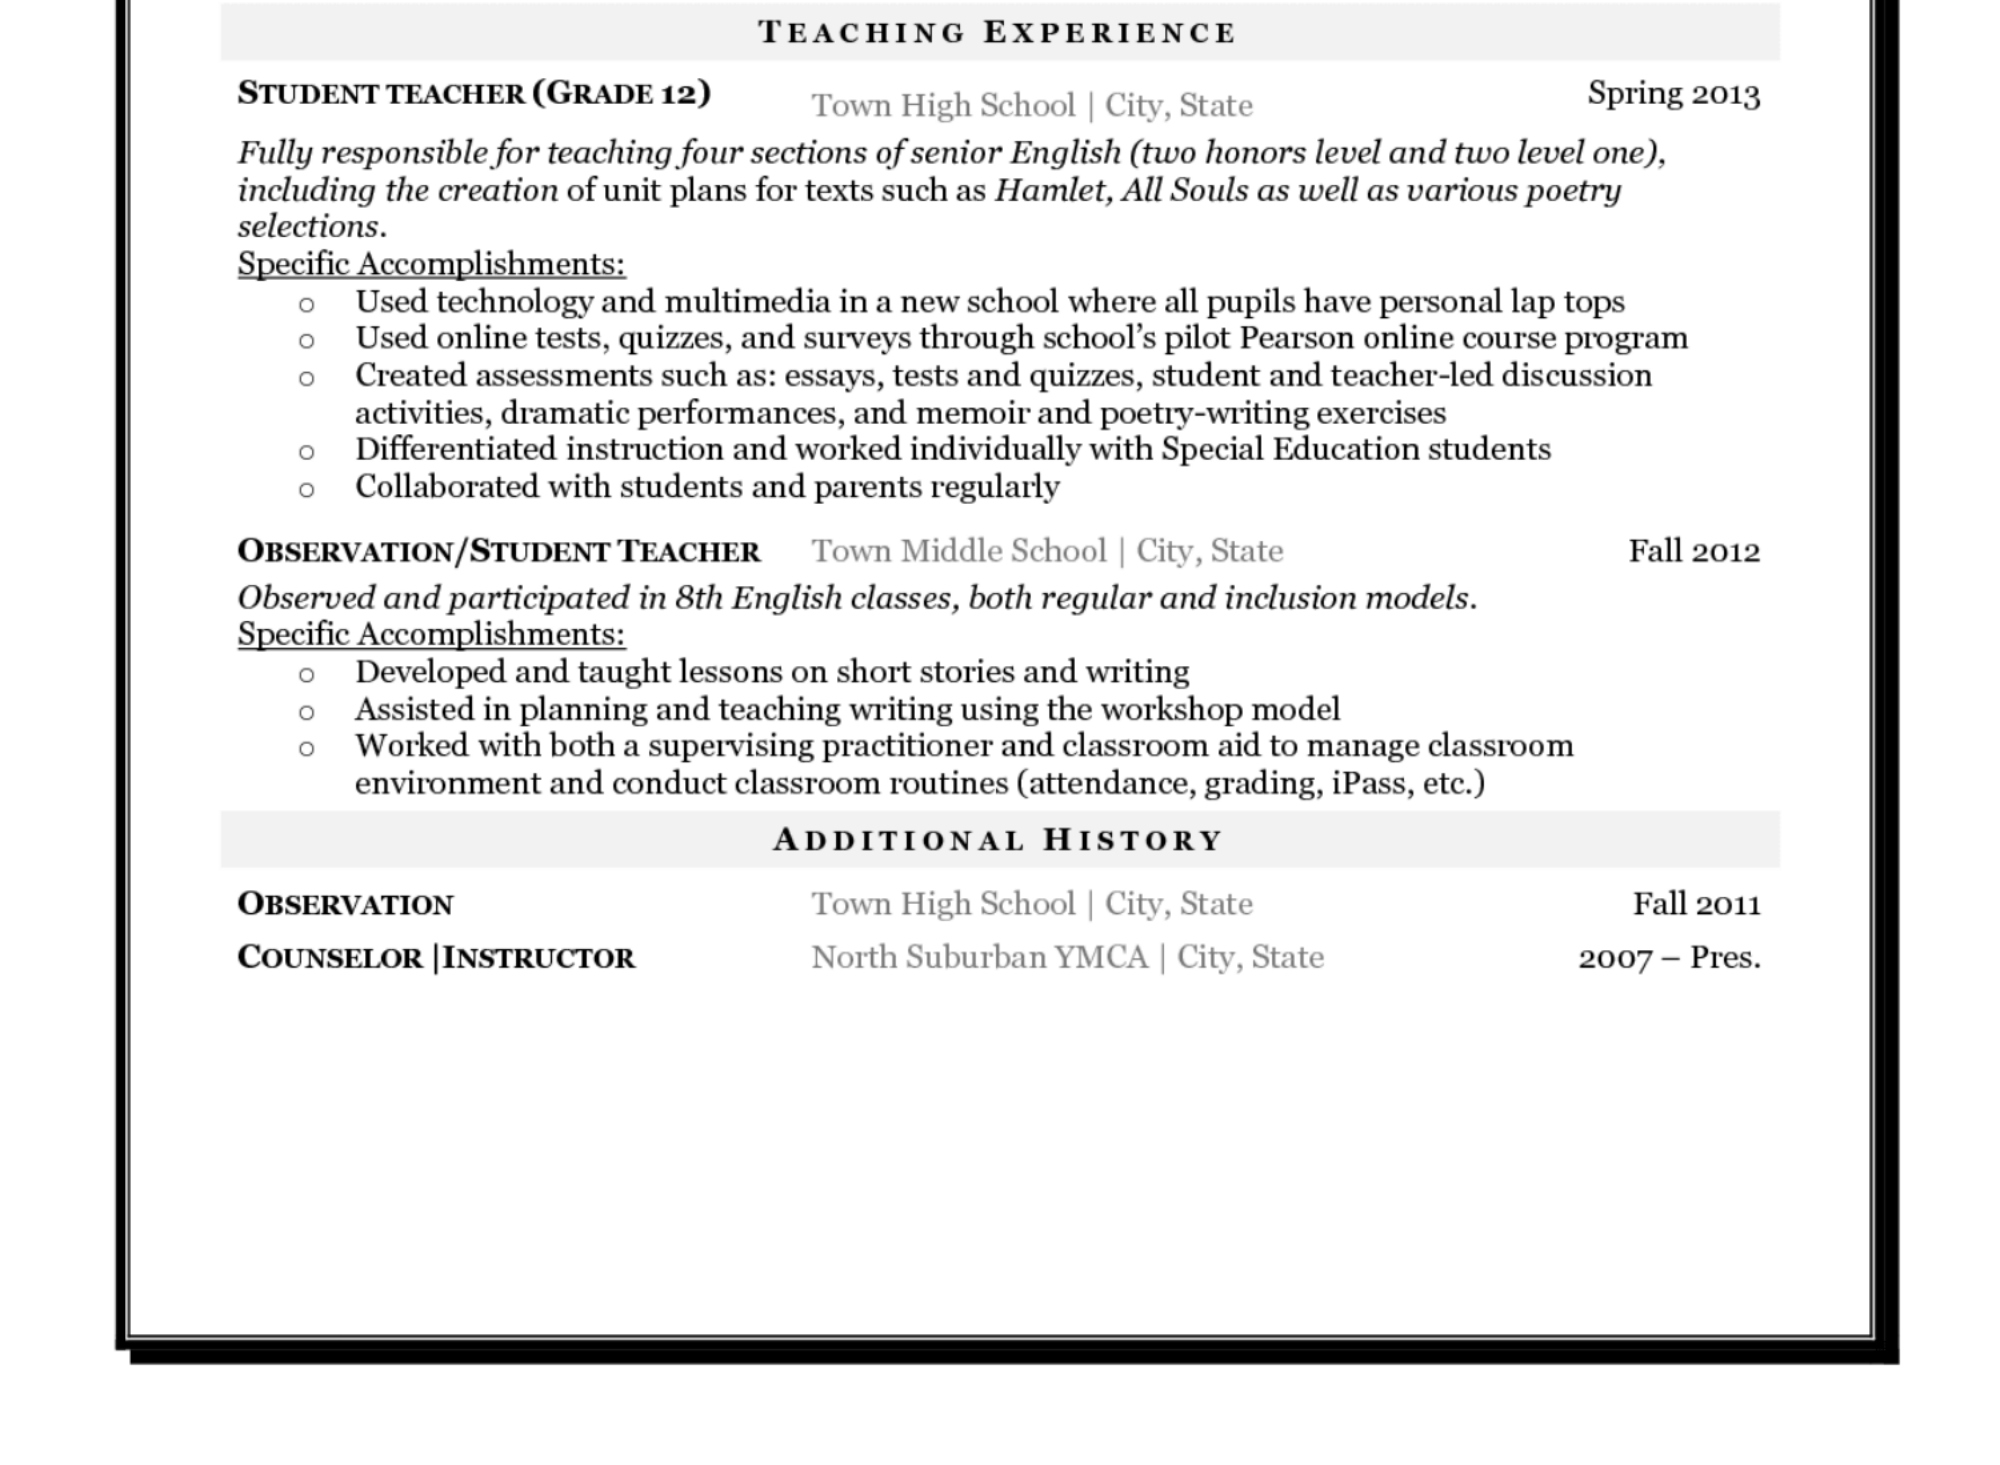 anatomy of a new teacher s resume steve p brady newteacher sample bottomthird